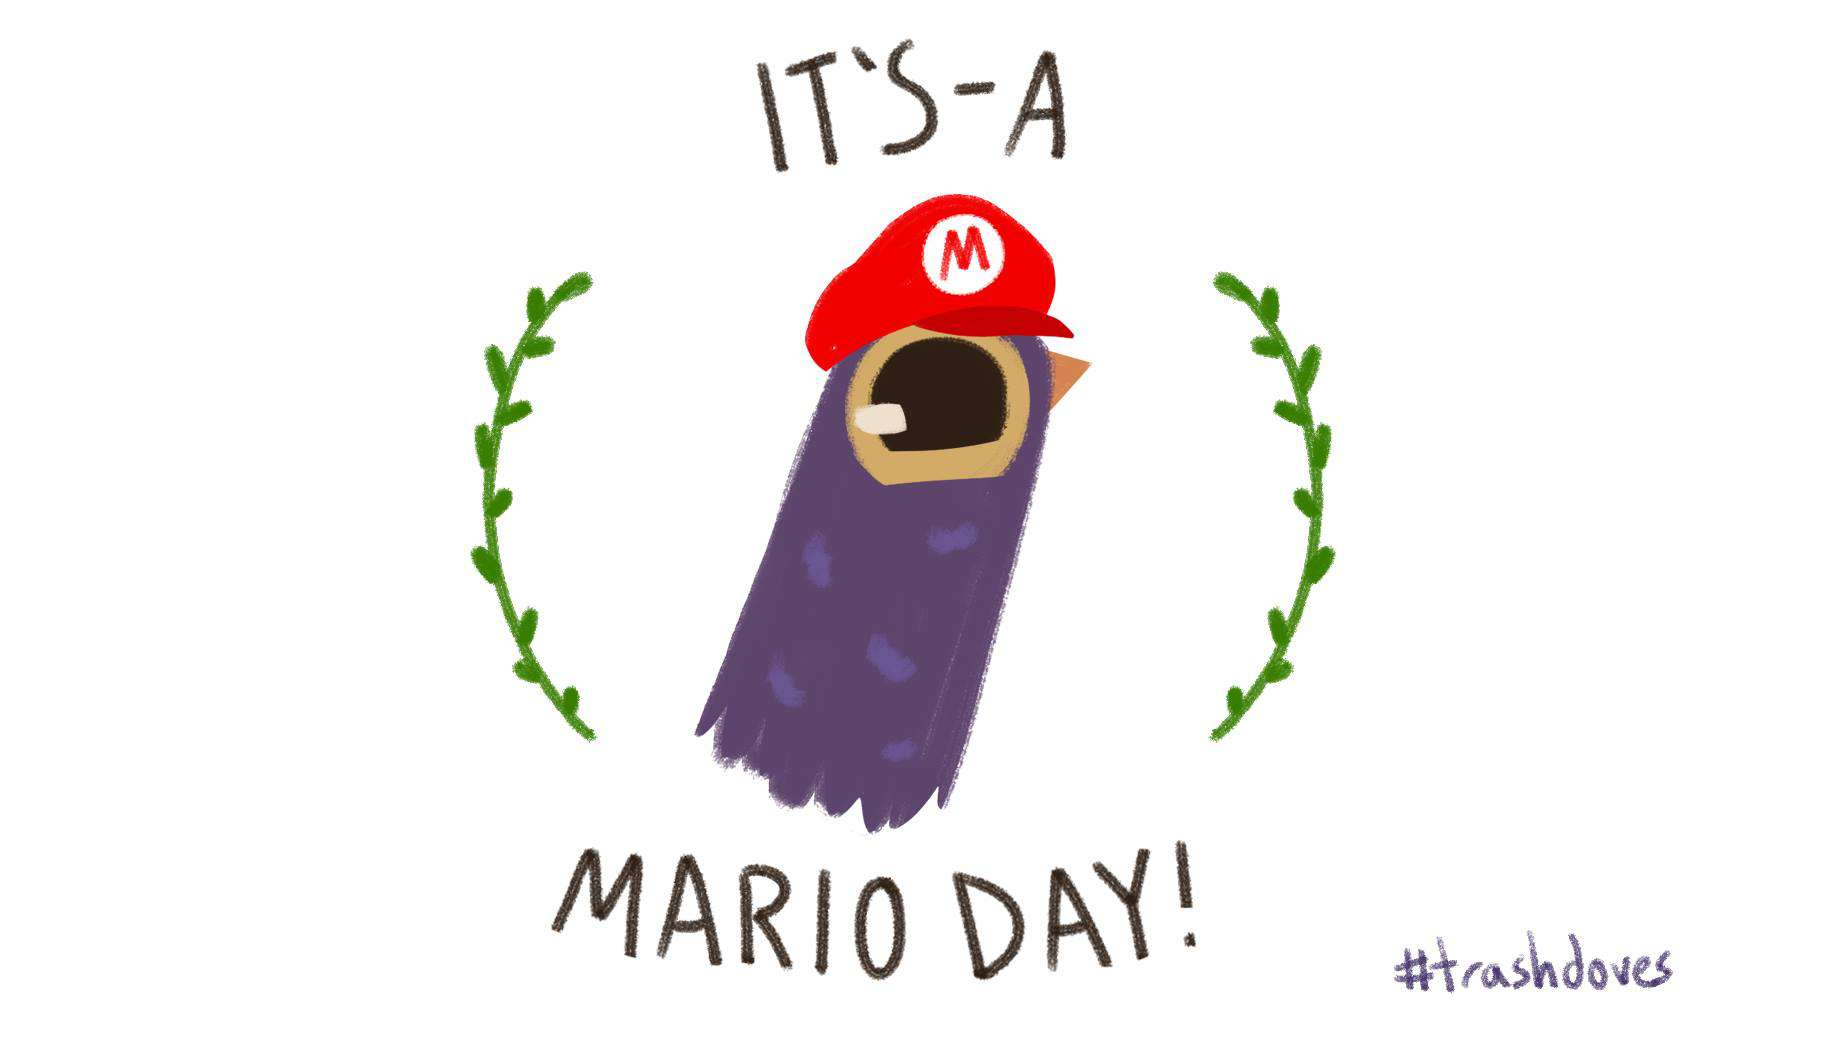 Mario Day Wishes pics free download